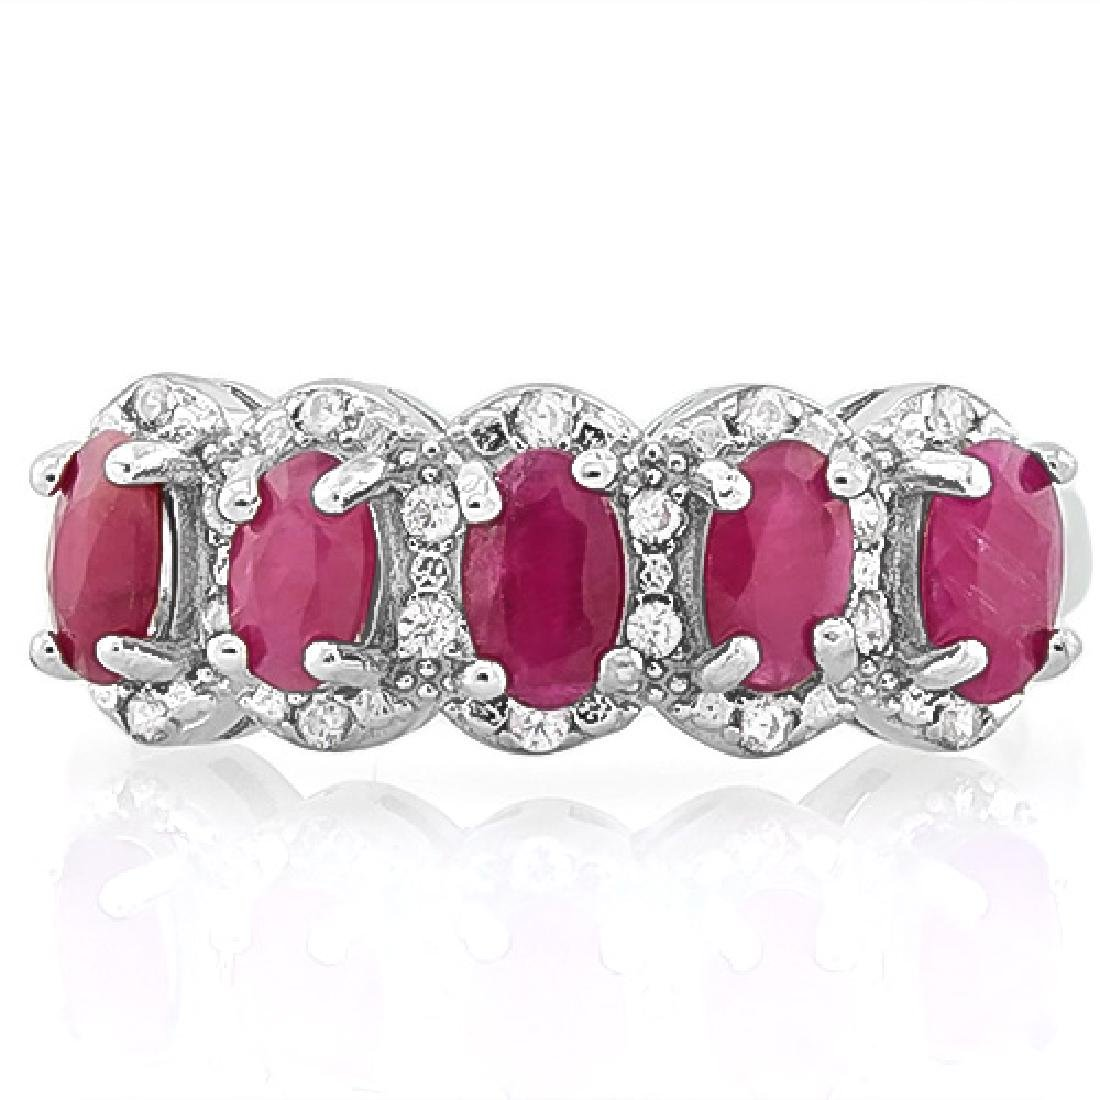 8 1/5 CARAT RUBY & DIAMOND 925 STERLING SILVER RING